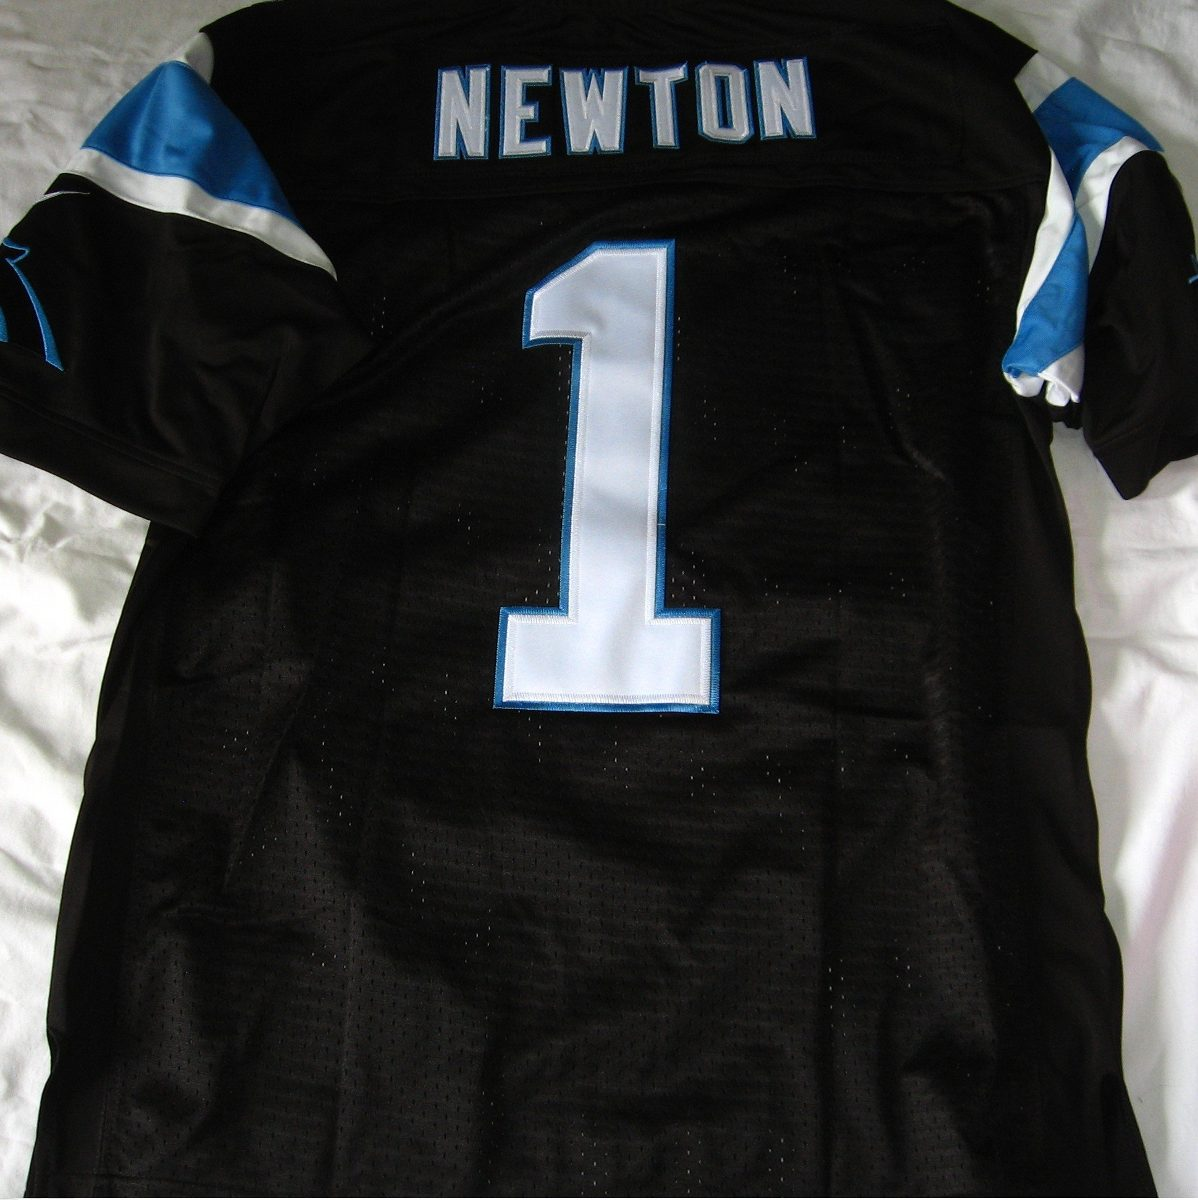 cb362c81fec89 camisa carolina panthers cam newton - pronta entrega. Carregando zoom.